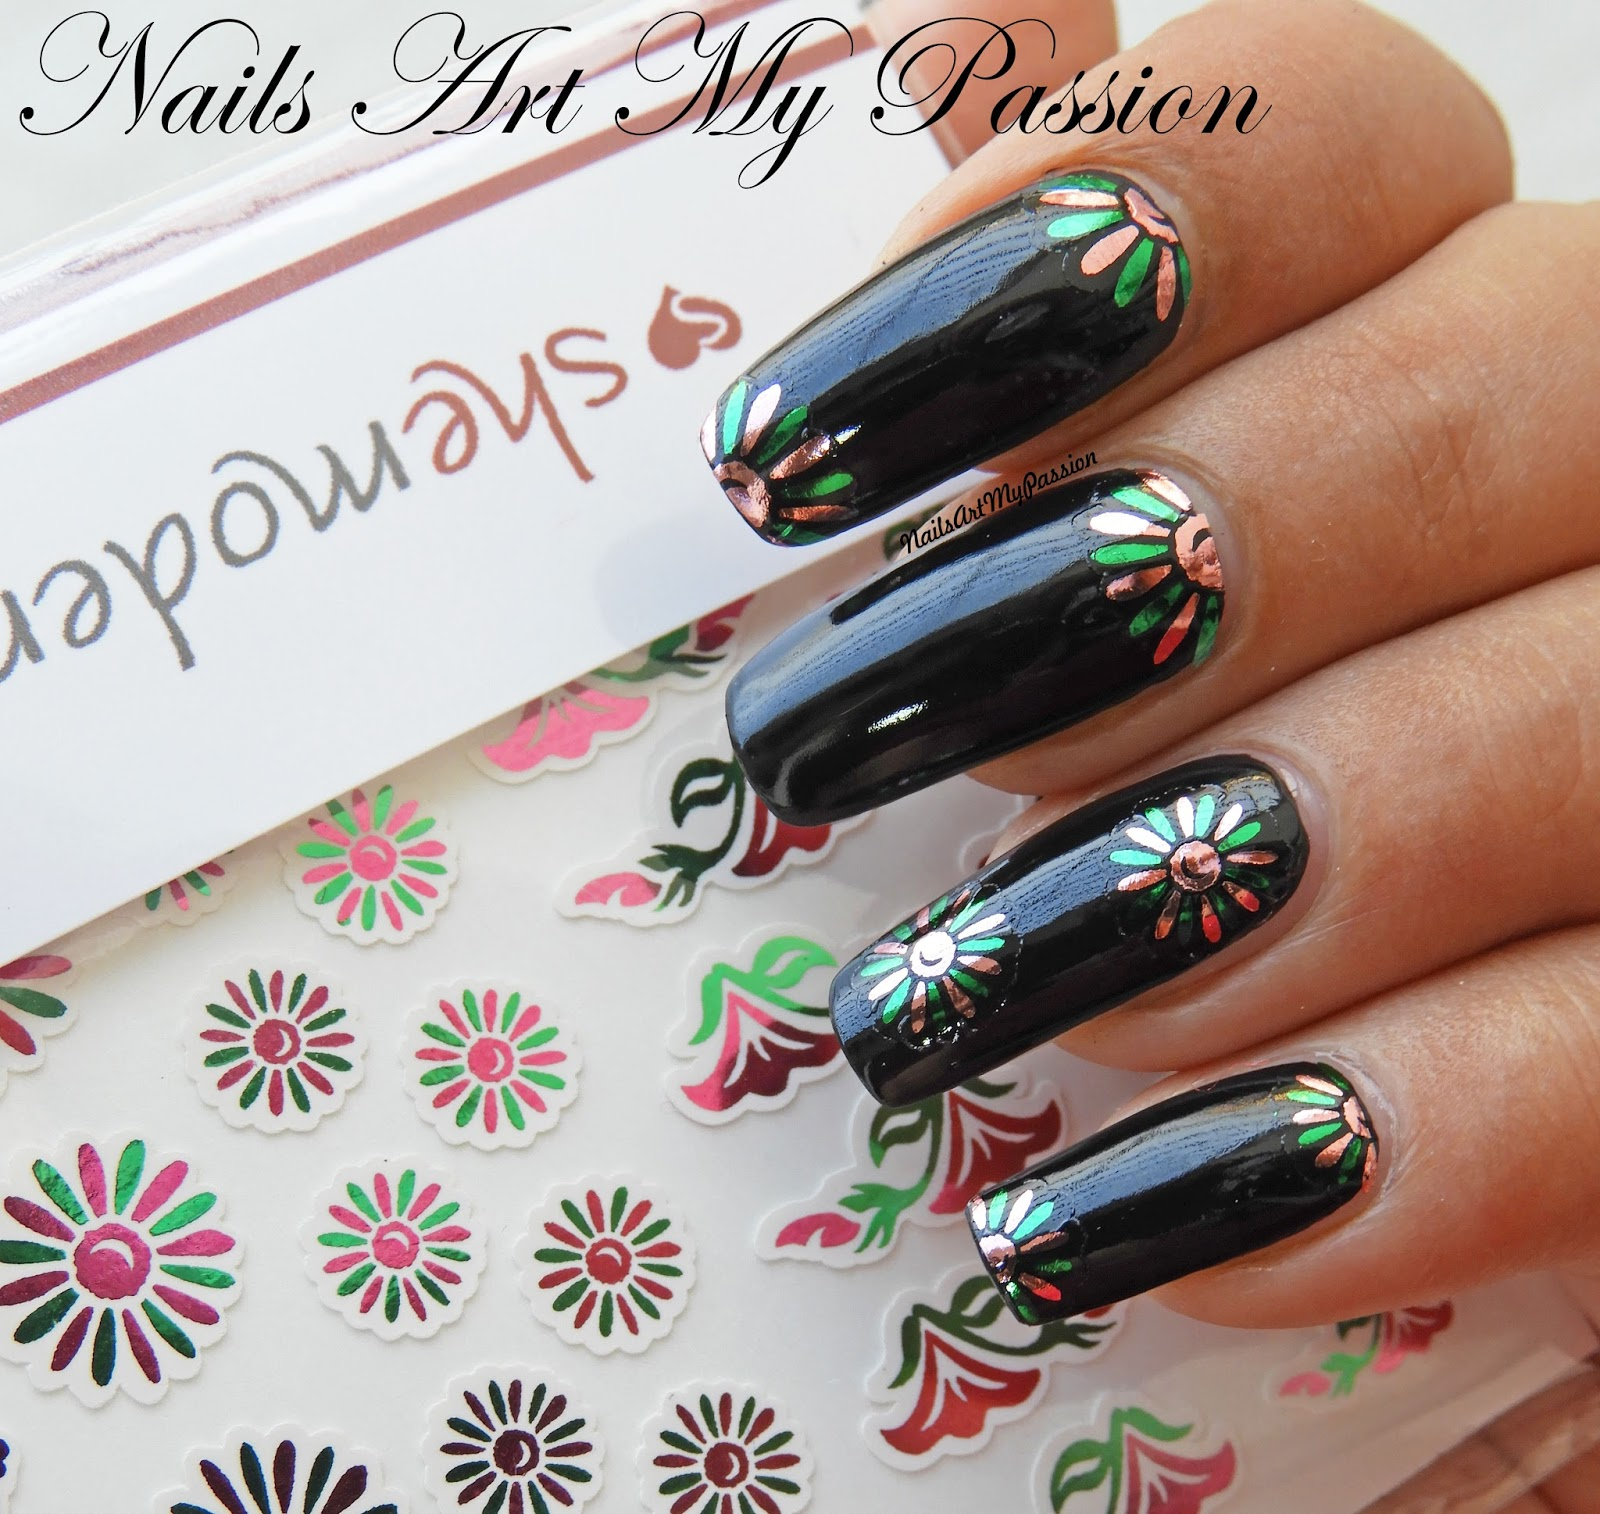 Nail Art My Passion: Floral Foil Nails DIY with pre-cut decals from ...